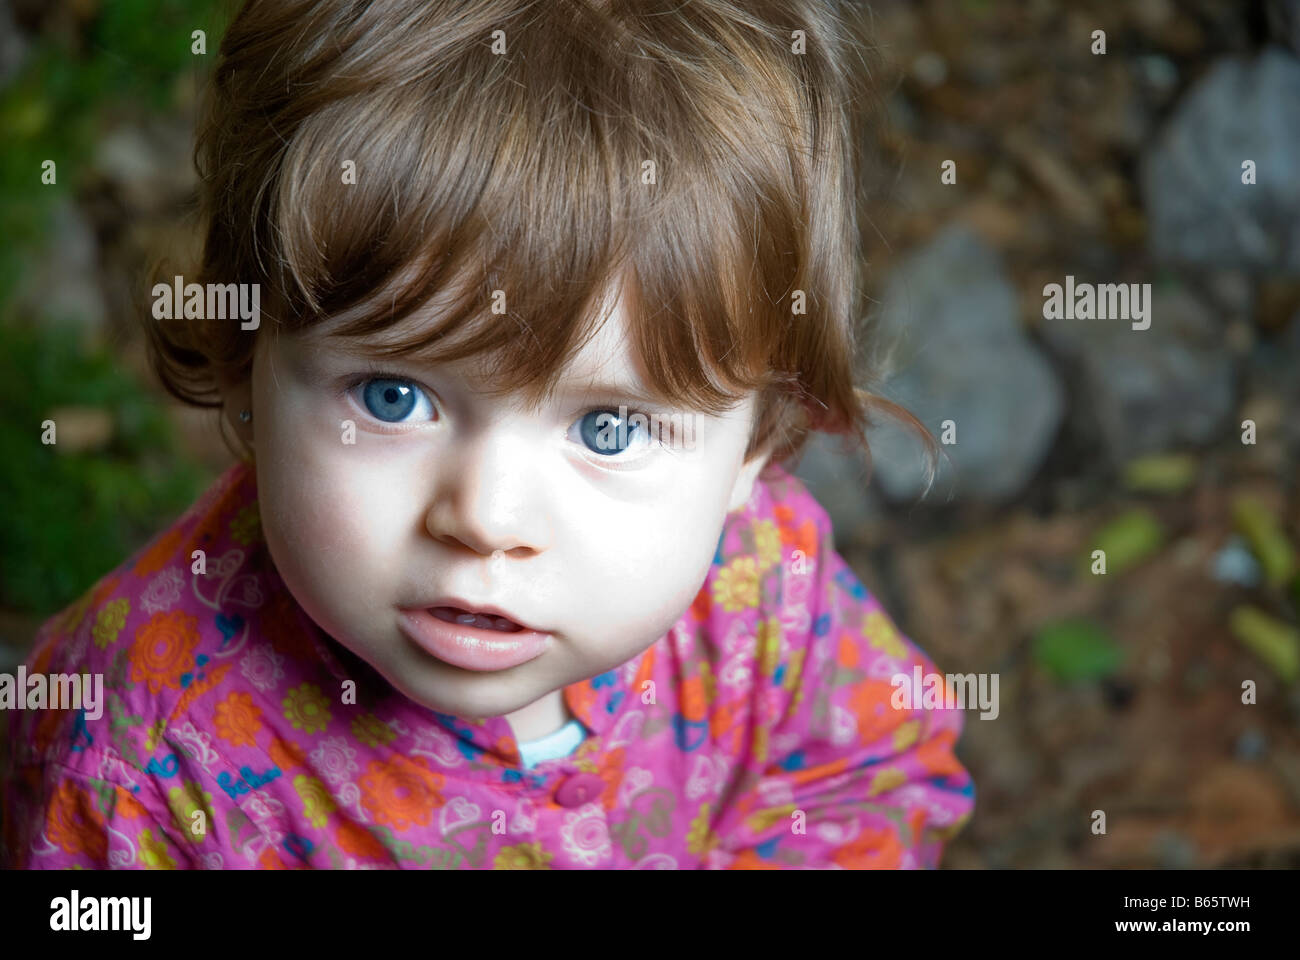 1 year old baby girl - Stock Image